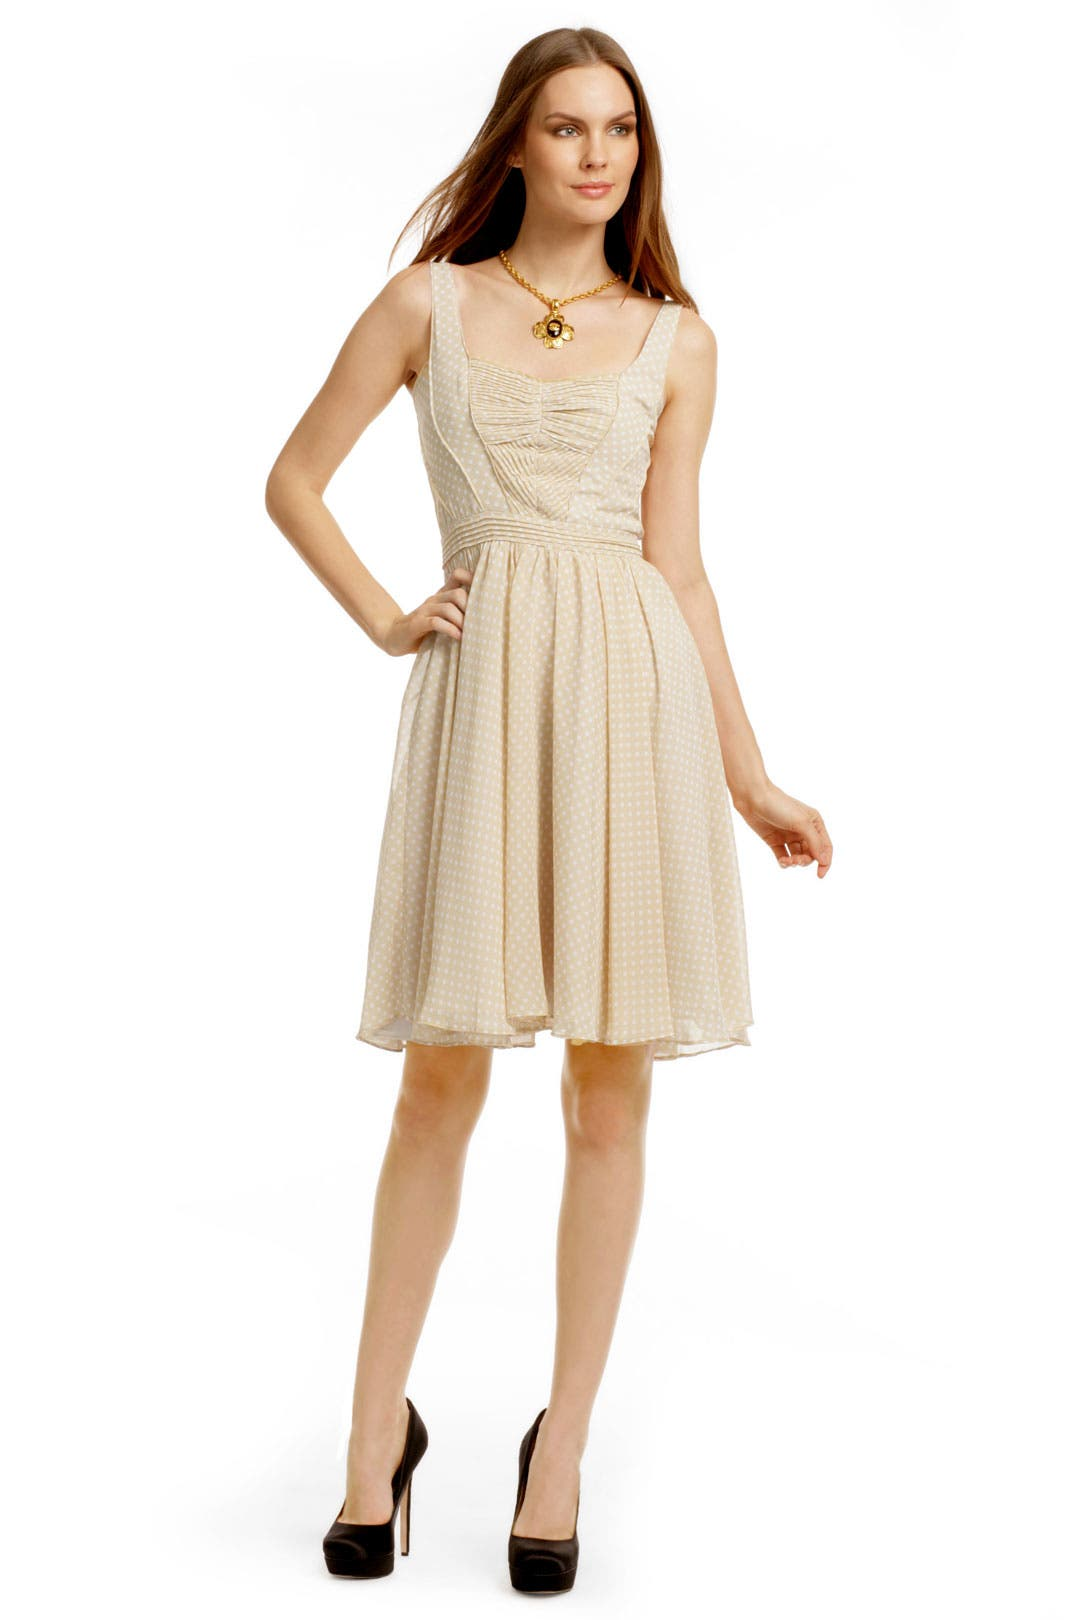 Countryside Chiffon Dress by Z Spoke Zac Posen